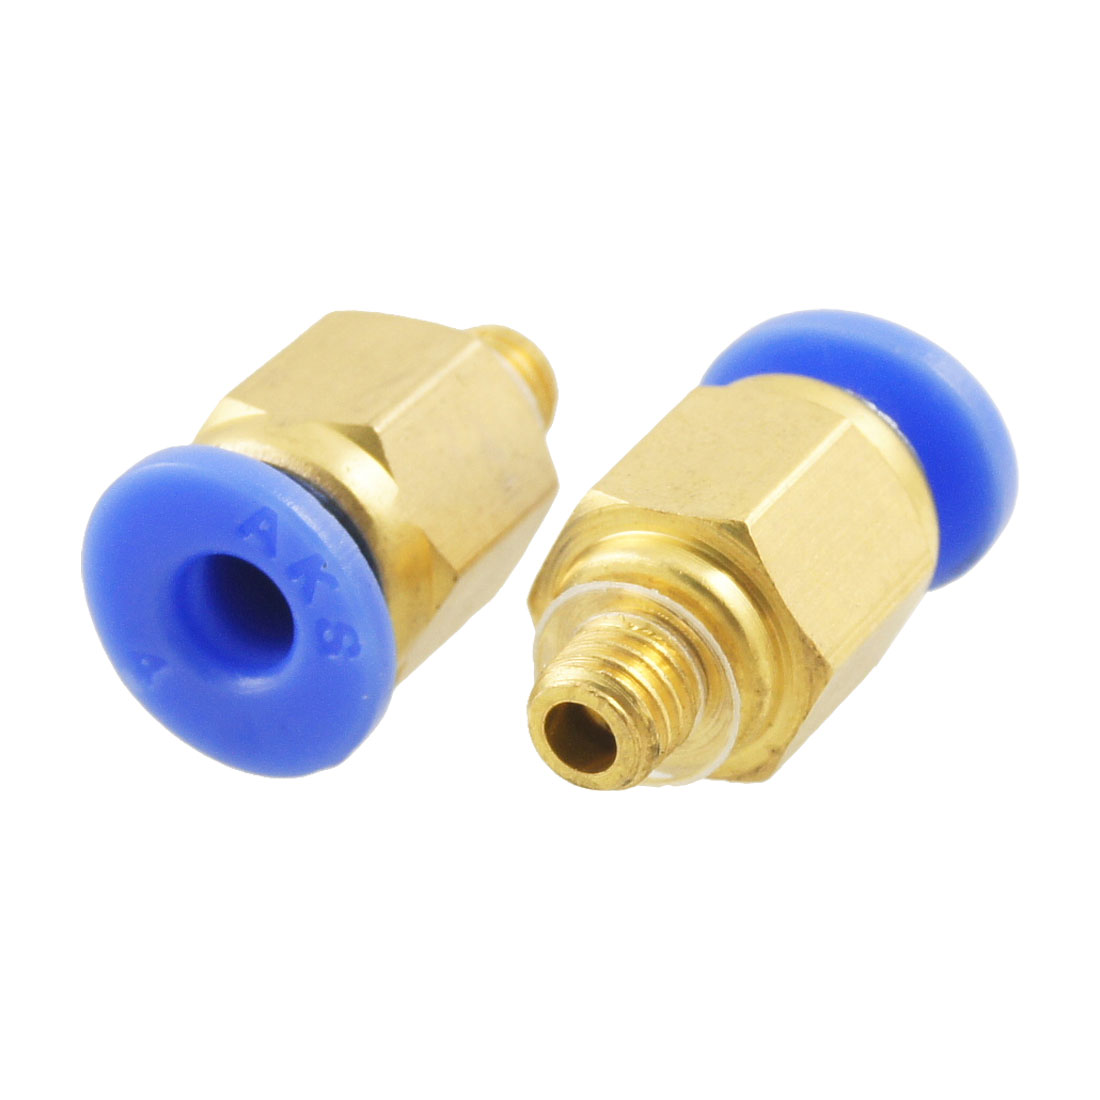 2 Pcs 4mm Pneumatic Tubing Push to 4.8mm Thread Quick Fittings